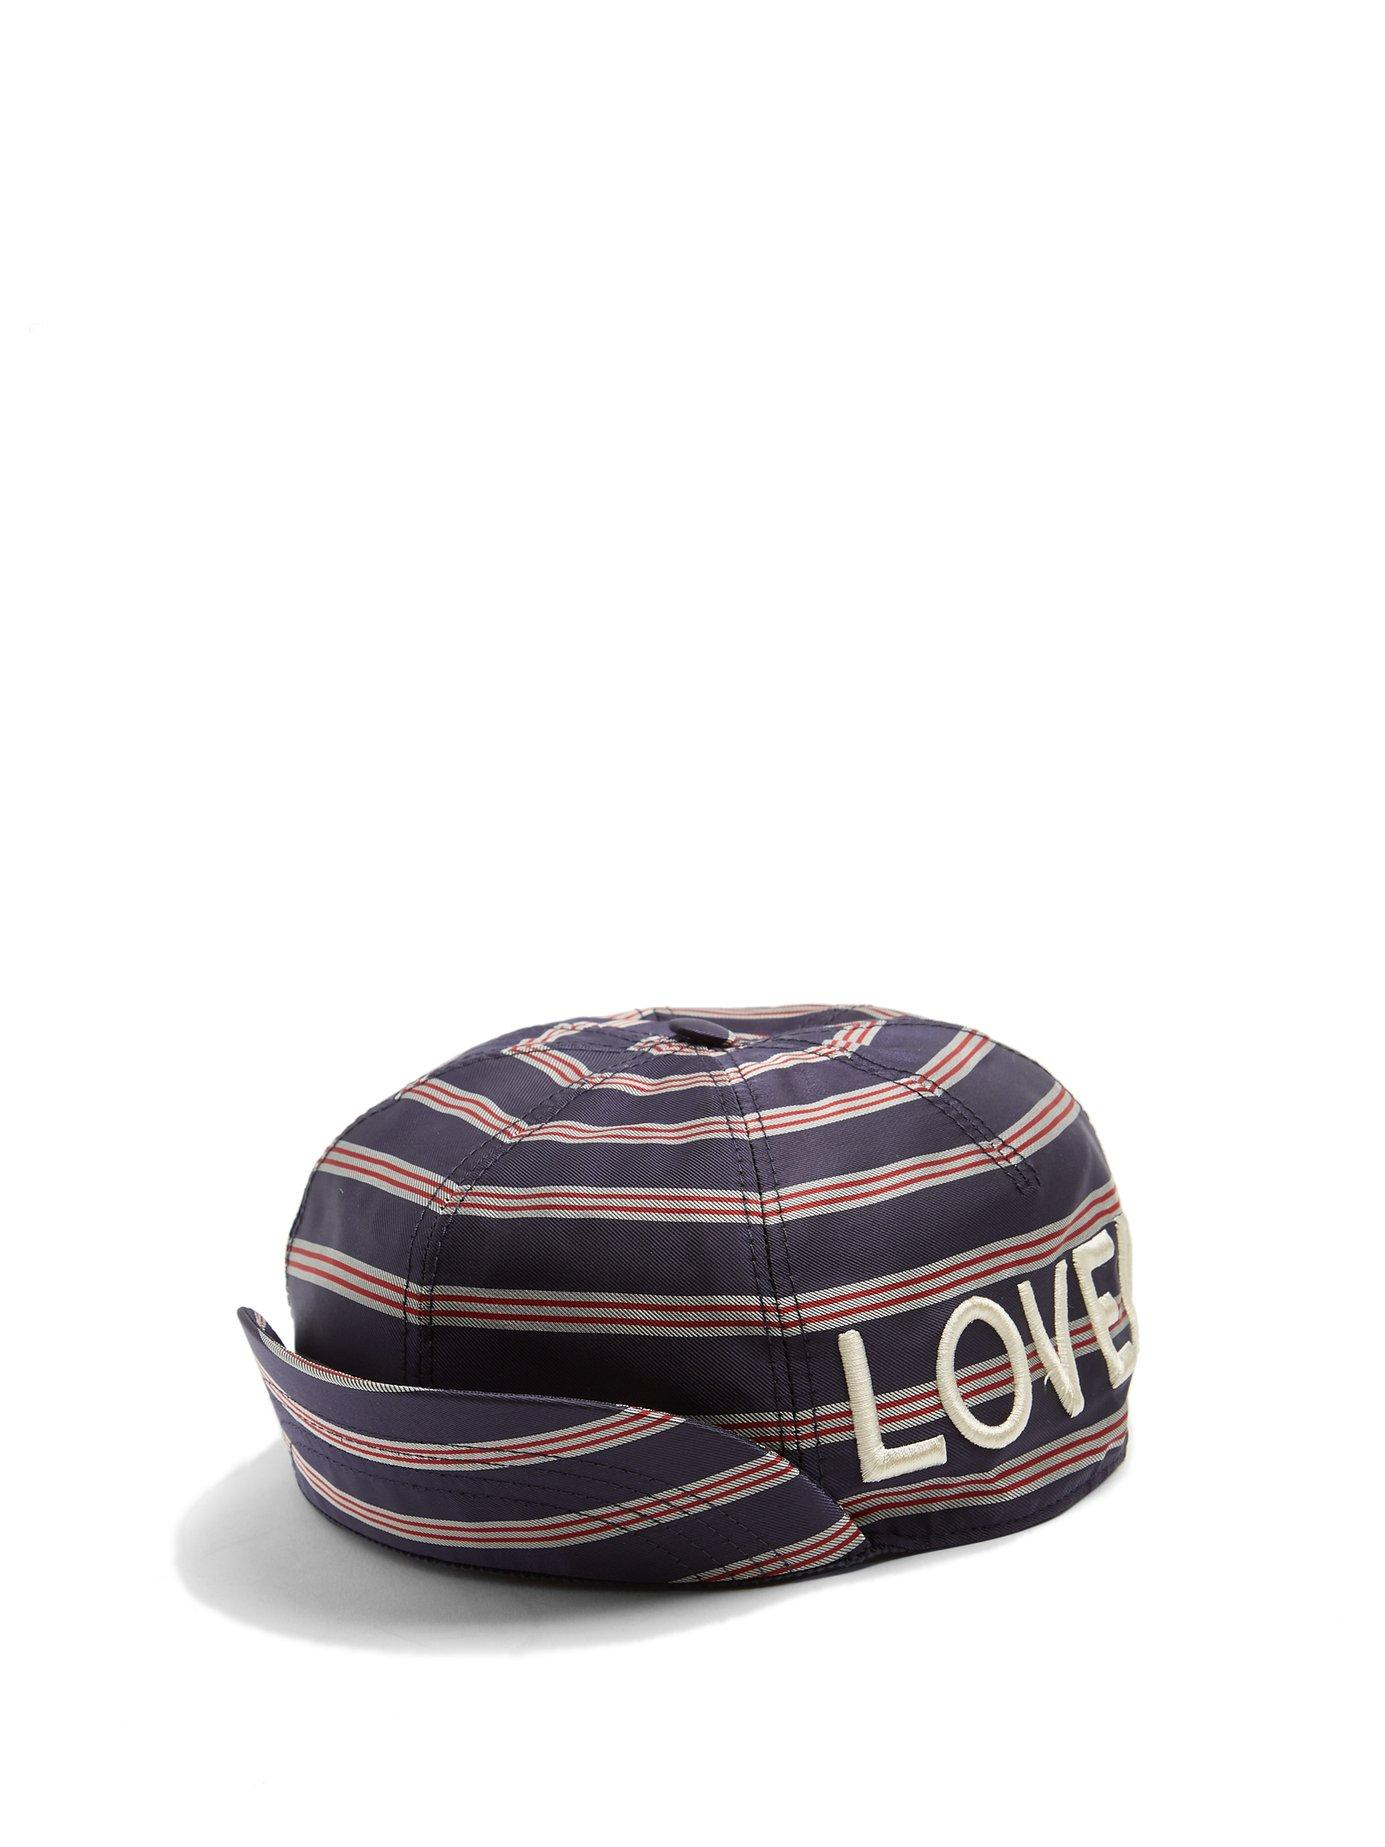 54826164b6a Lyst - Gucci Embroidered Striped Satin Cap in Blue for Men - Save 18%